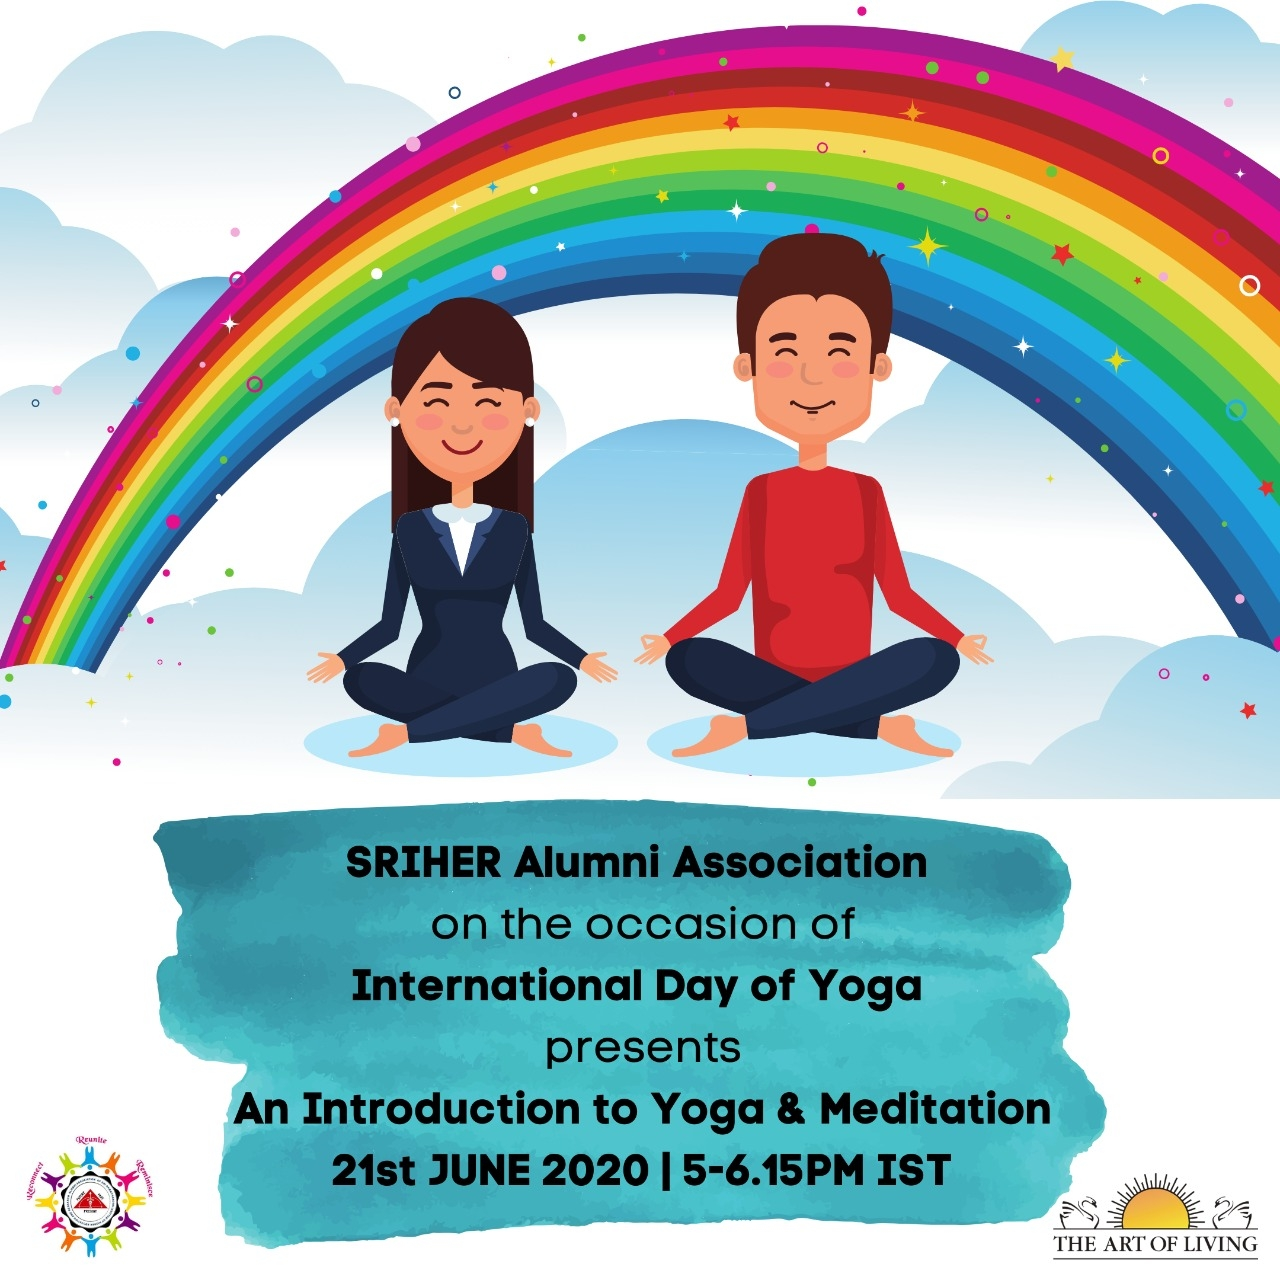 SRIHER Alumni Association - International Day of Yoga